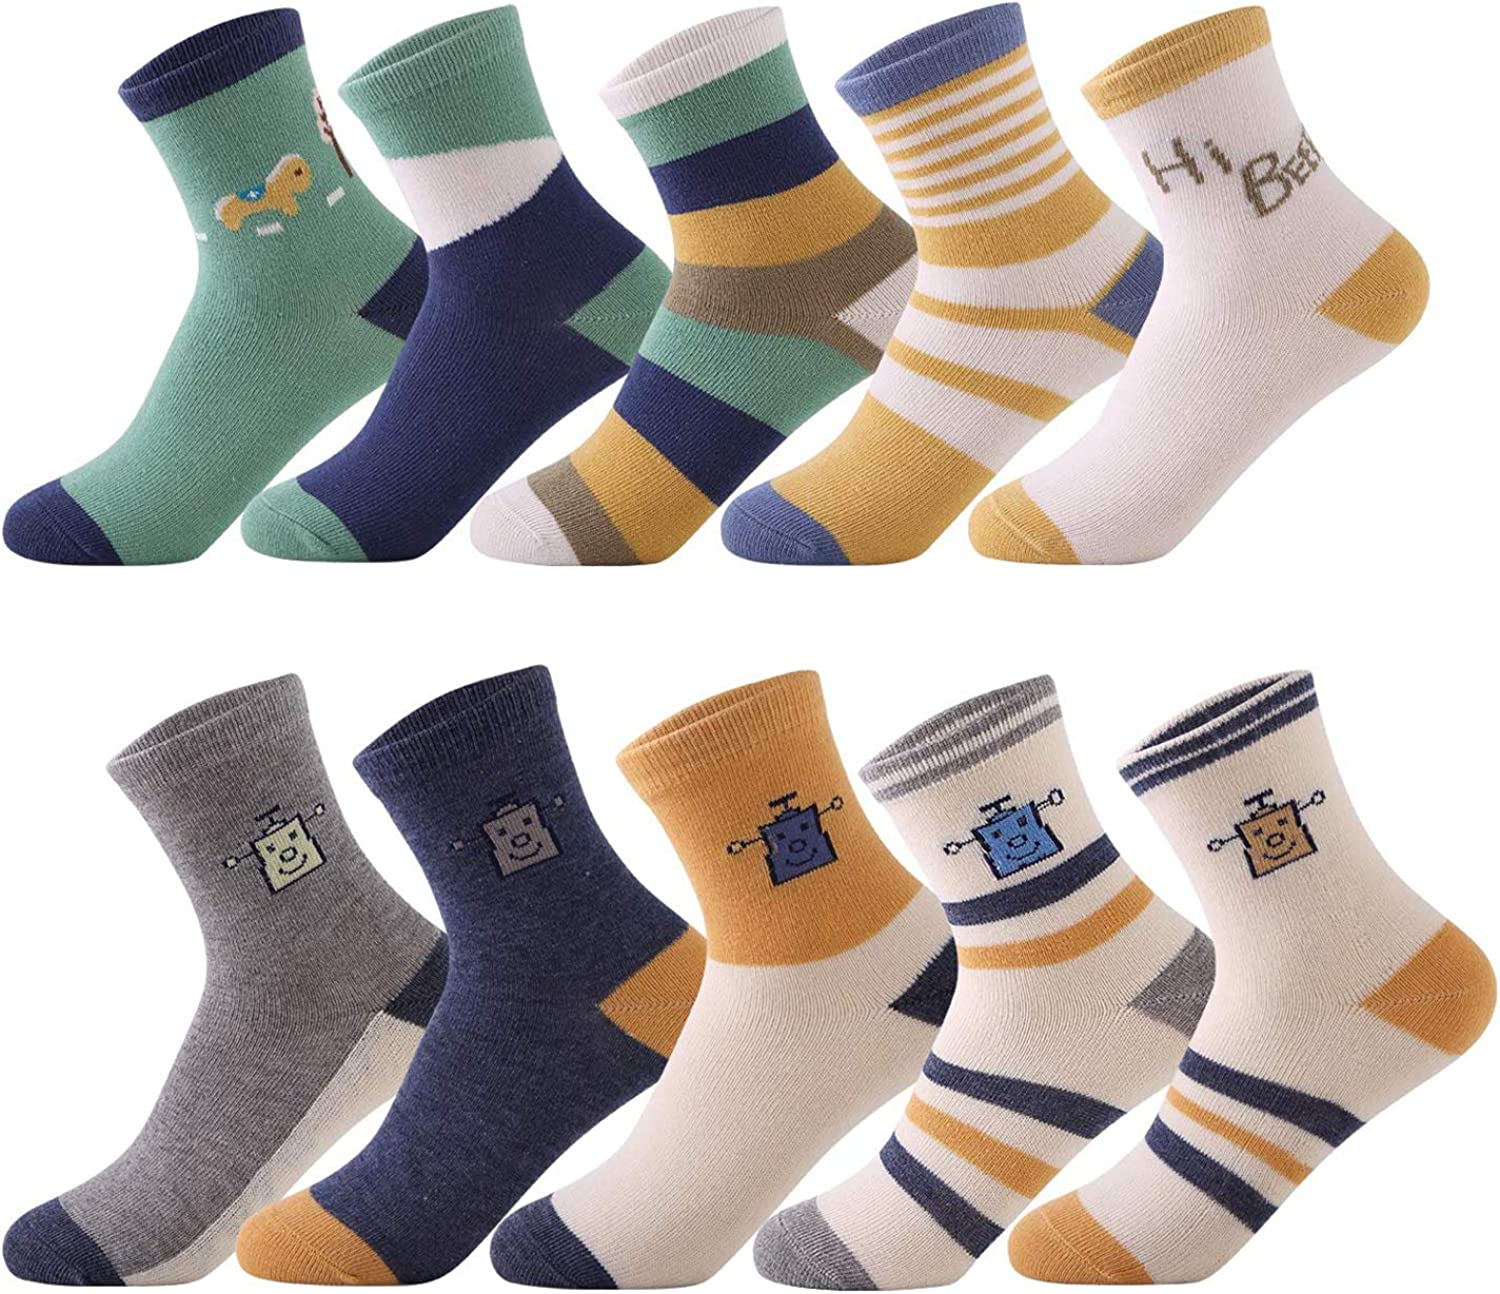 10 Pairs Ankle Cotton Socks for Unisex Baby Kids 1-12 Years